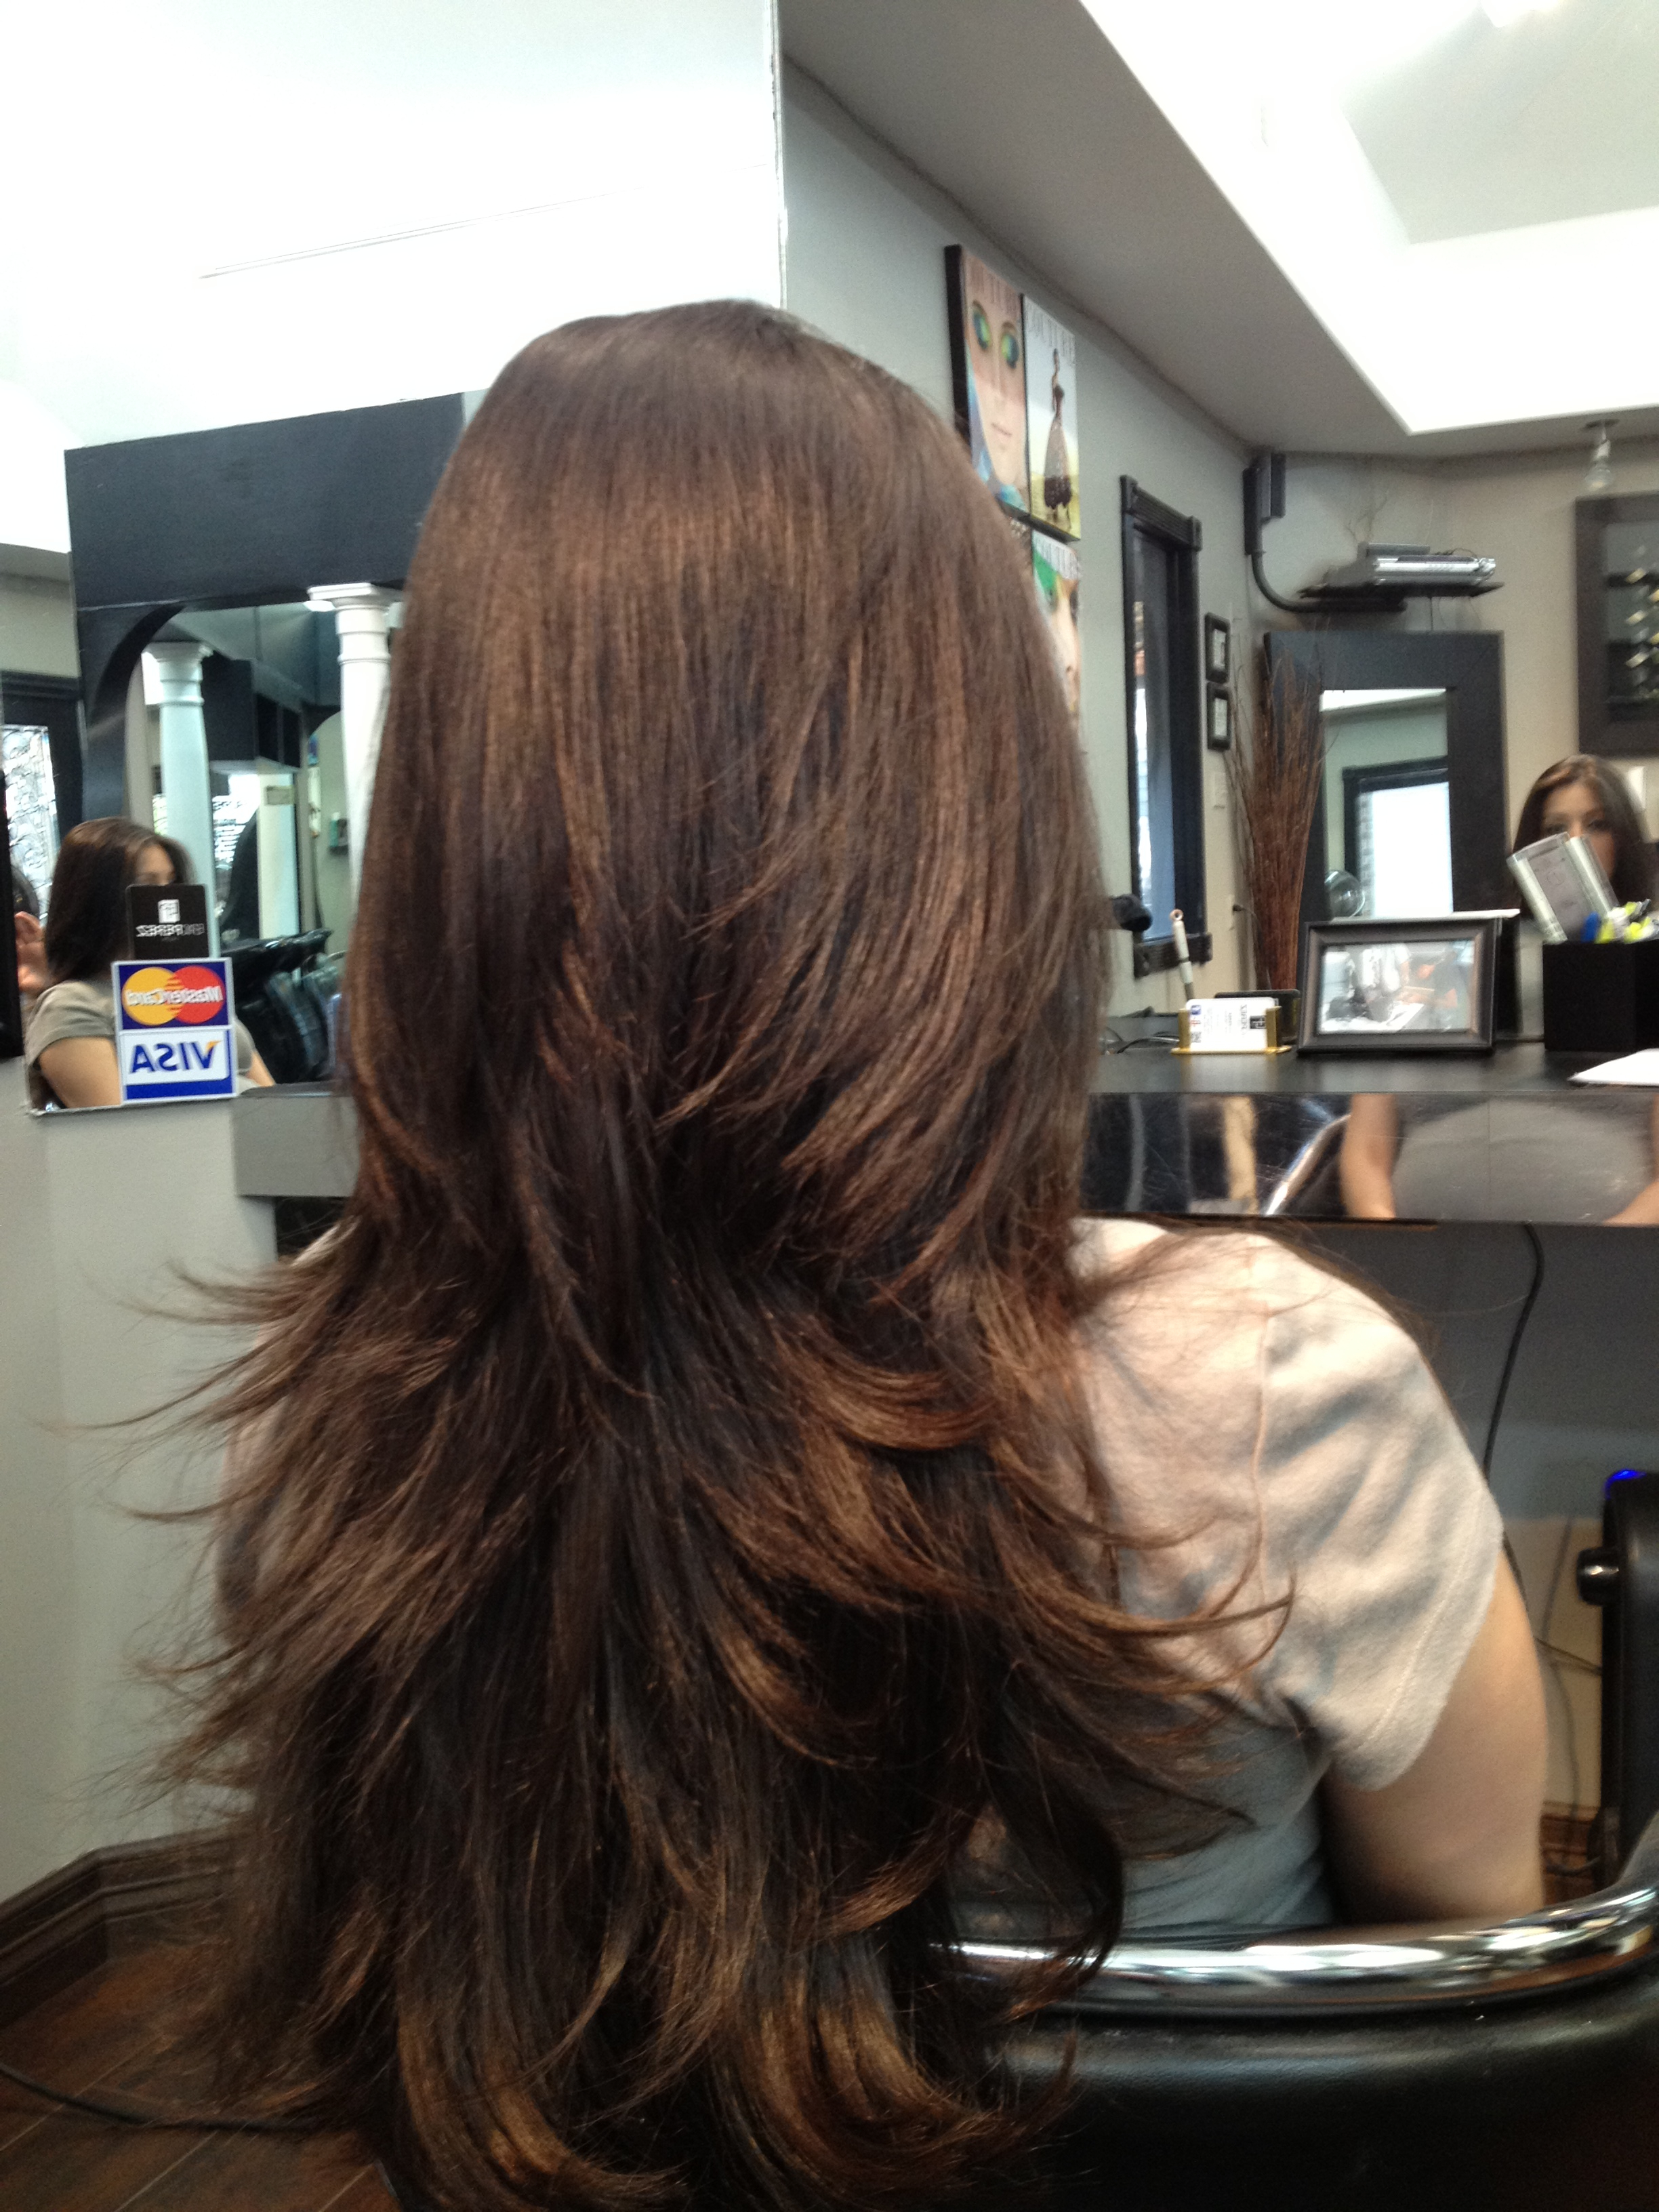 2018 Blowout Ready Layers For Long Hairstyles Intended For Houston Brazilian Blowout « Eric Perez Salon (Gallery 13 of 20)